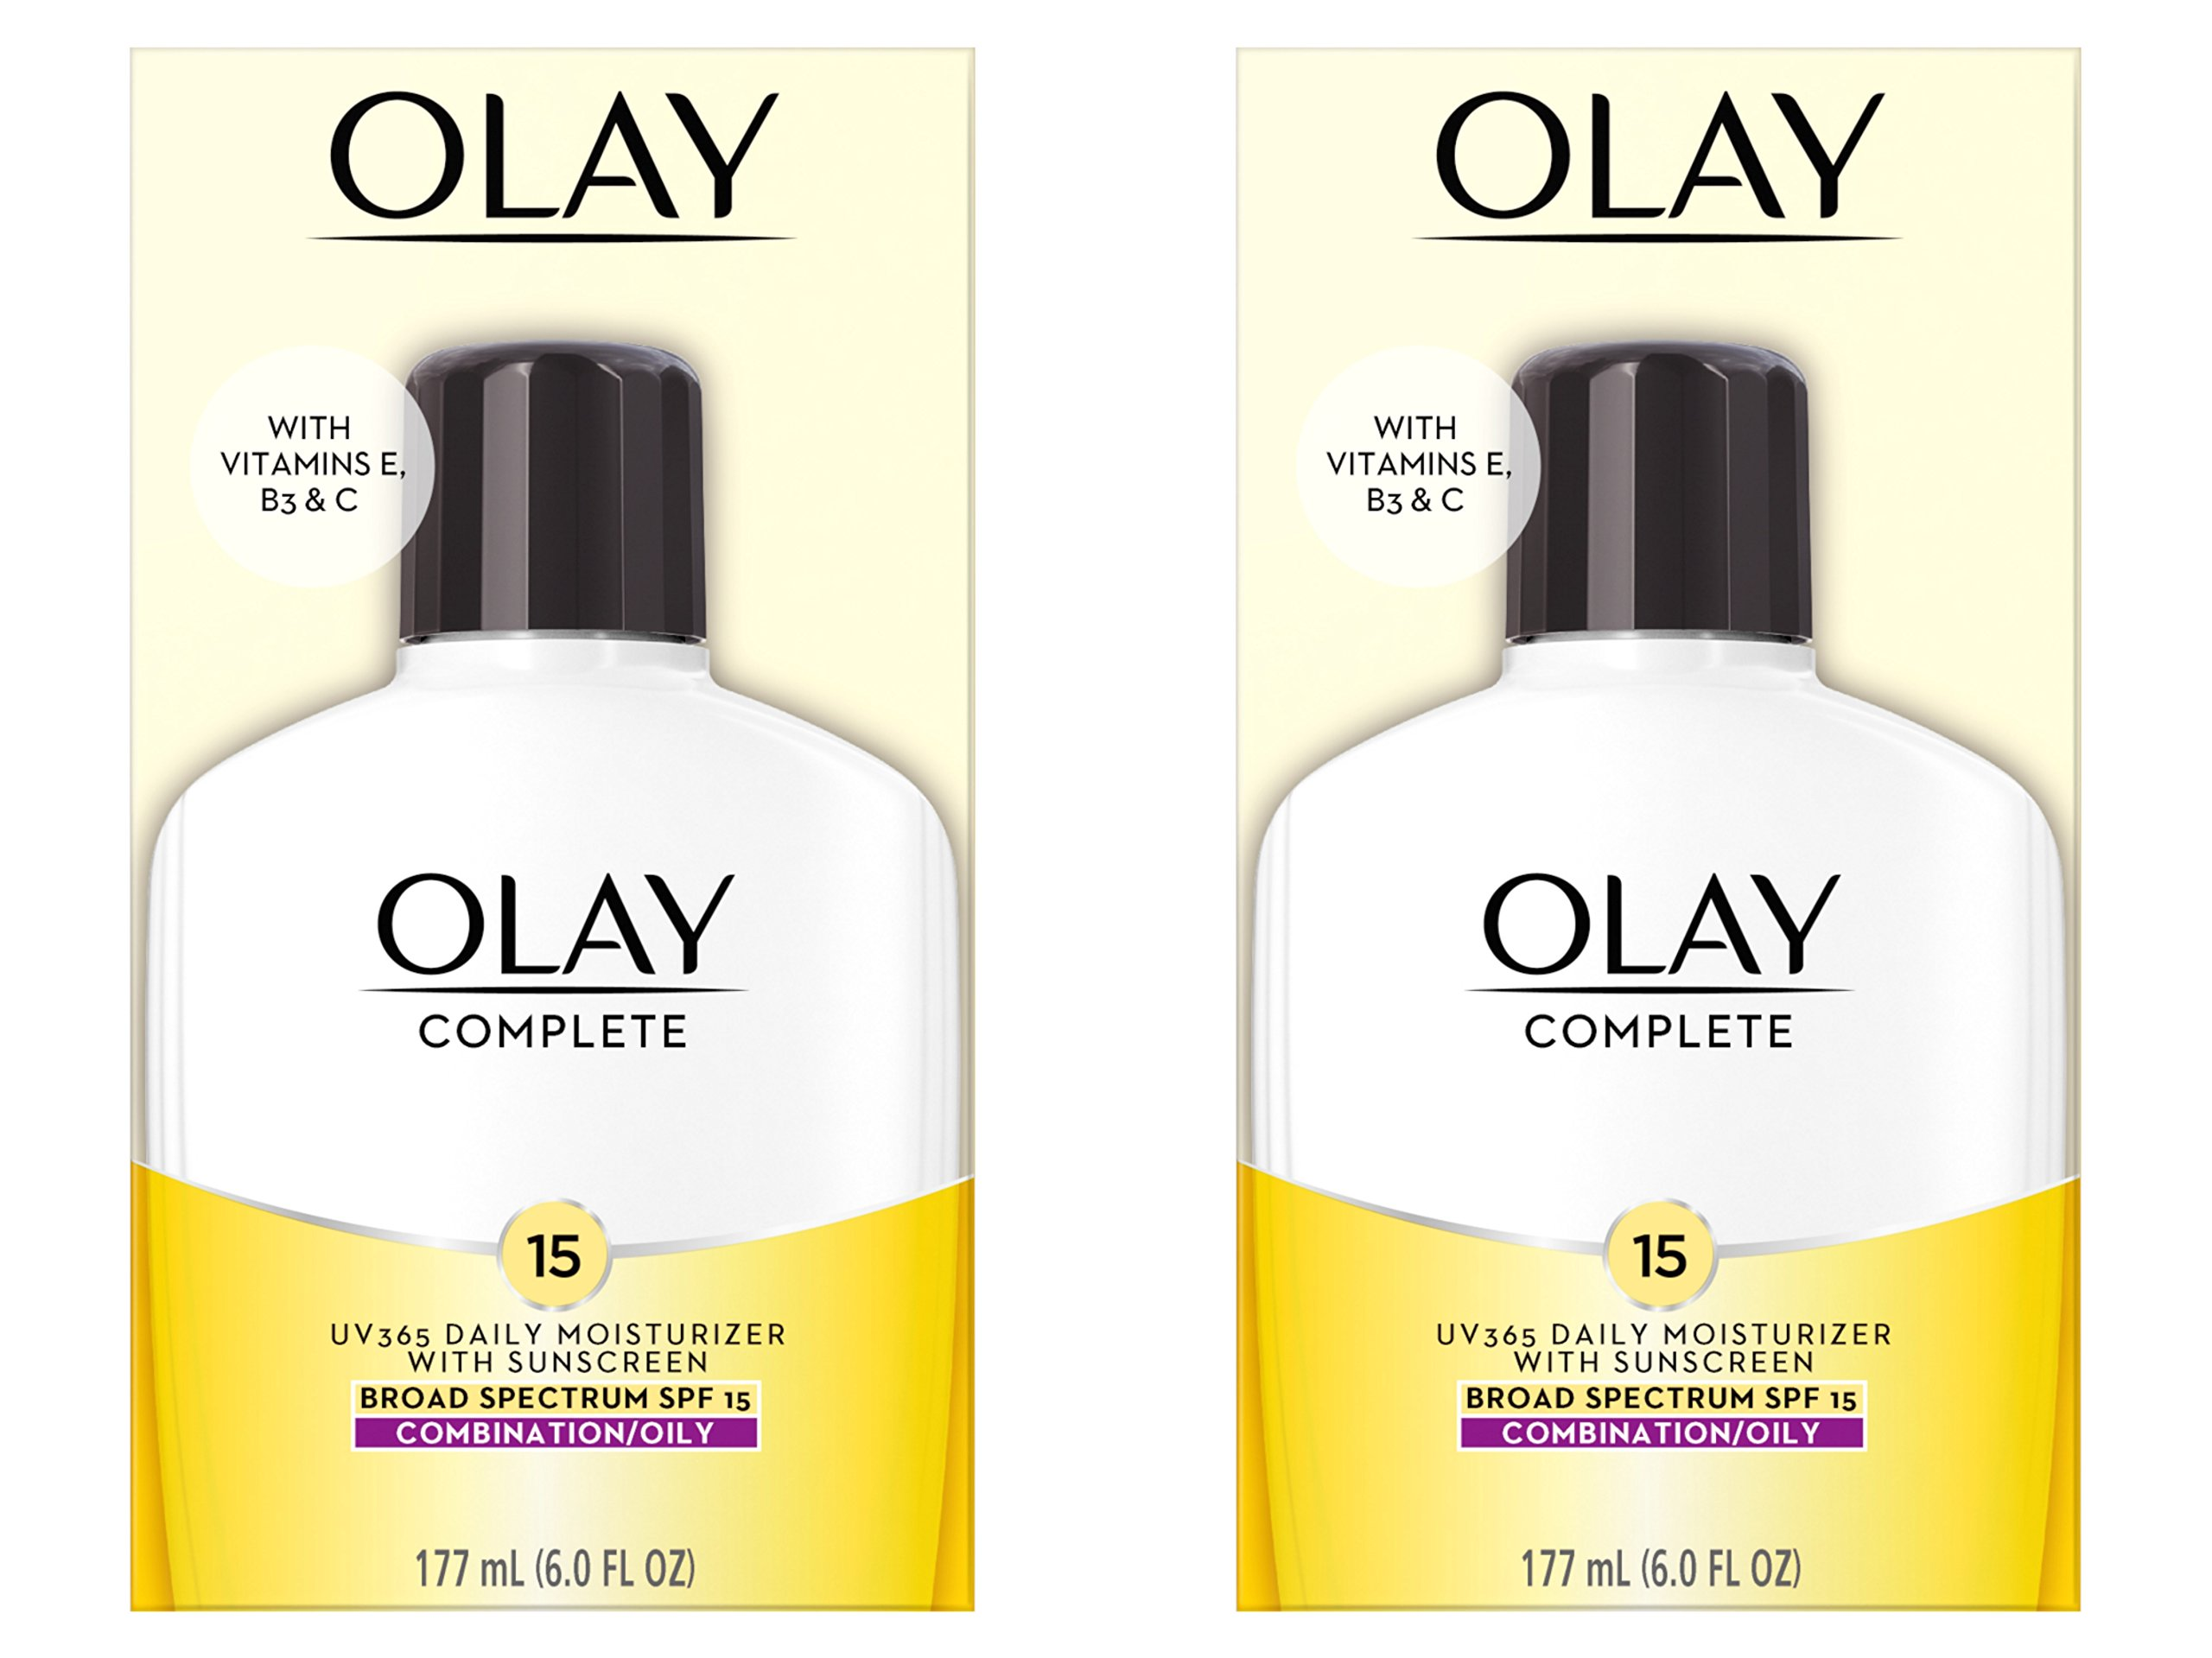 Olay Complete Lotion All Day Face Moisturizer for Combination/Oily Skin with SPF 15, 6 Fl Oz (Pack of 2)